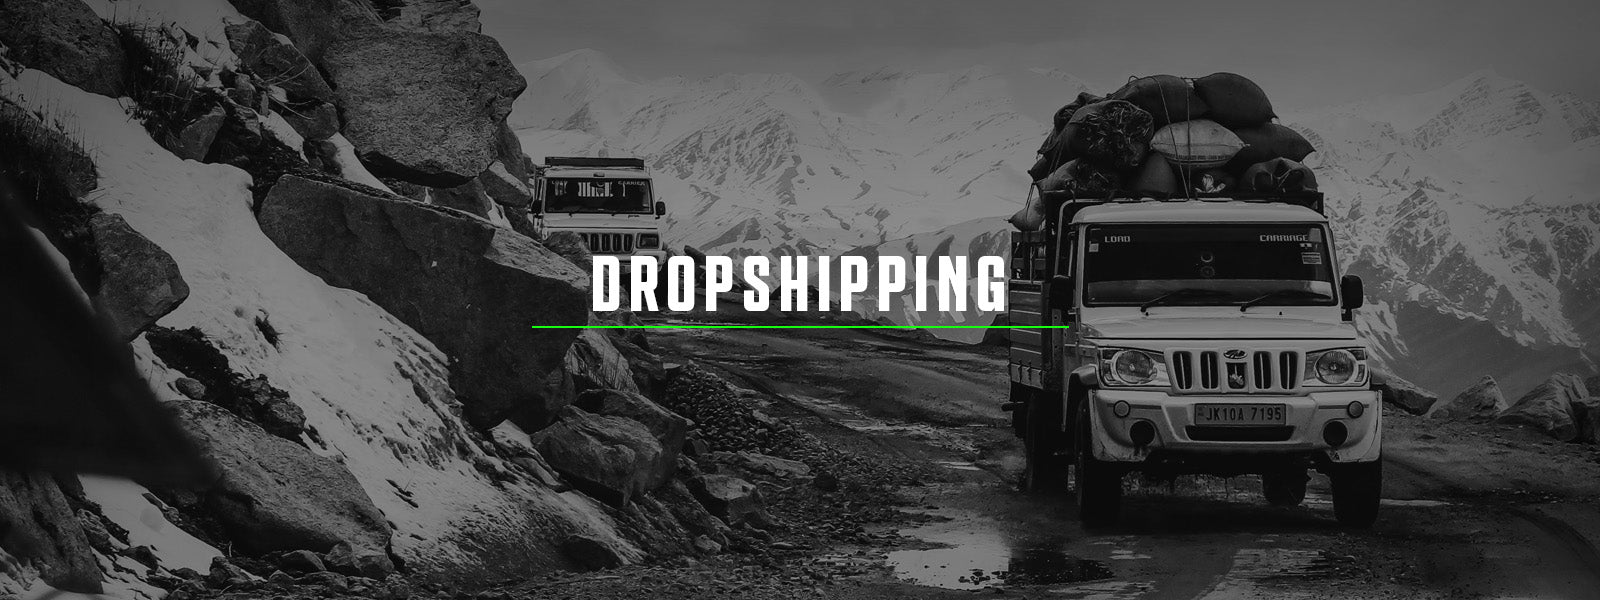 Dropshipping The Indian Face